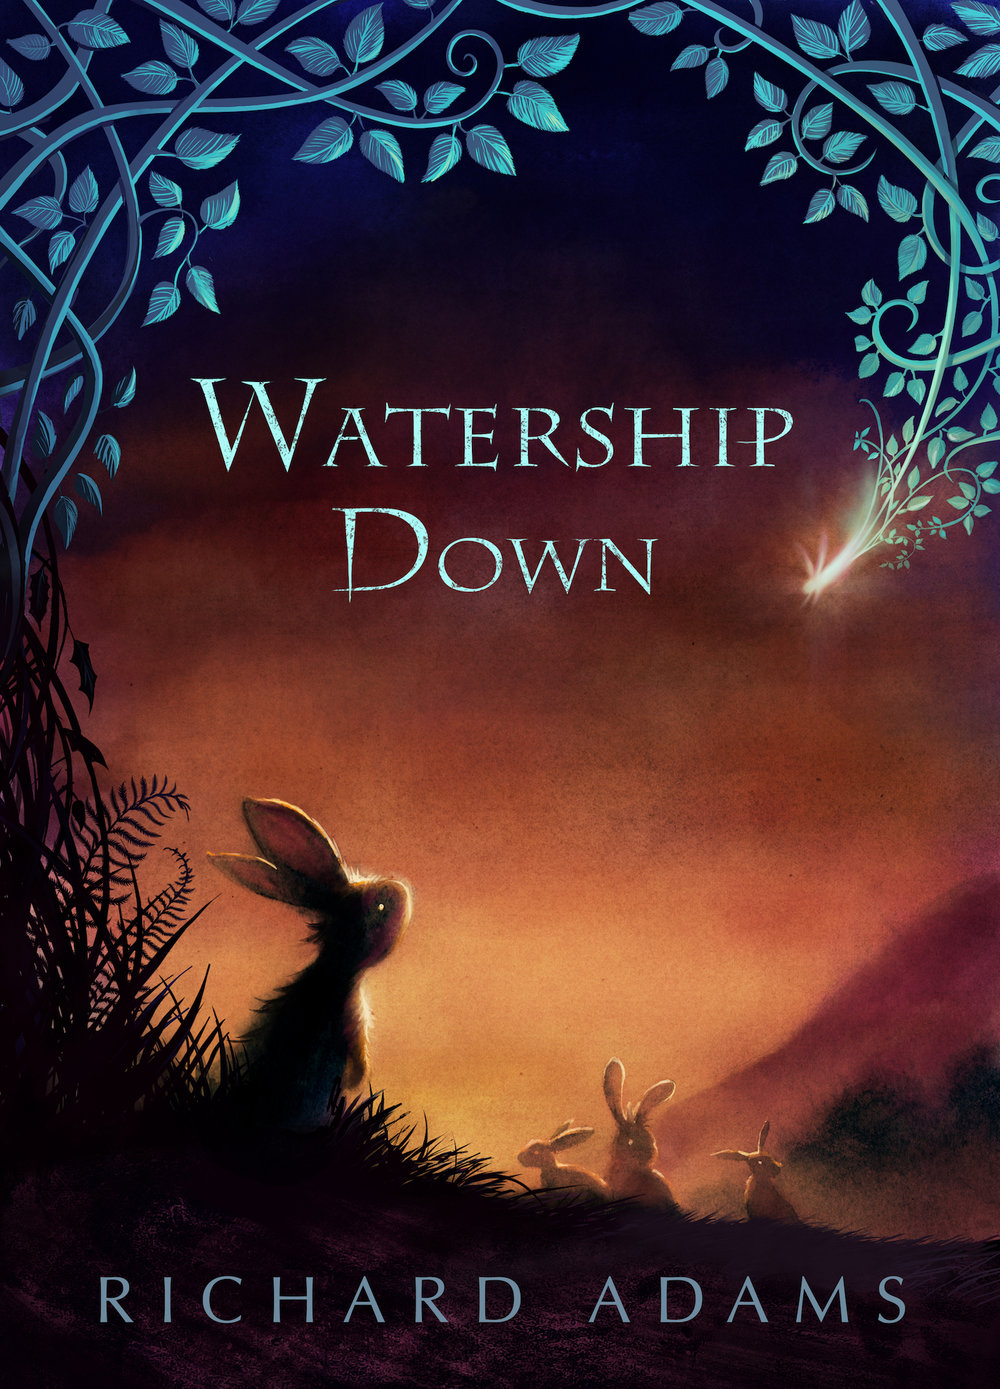 neilprice_Watershipdown-illustration2.jpg